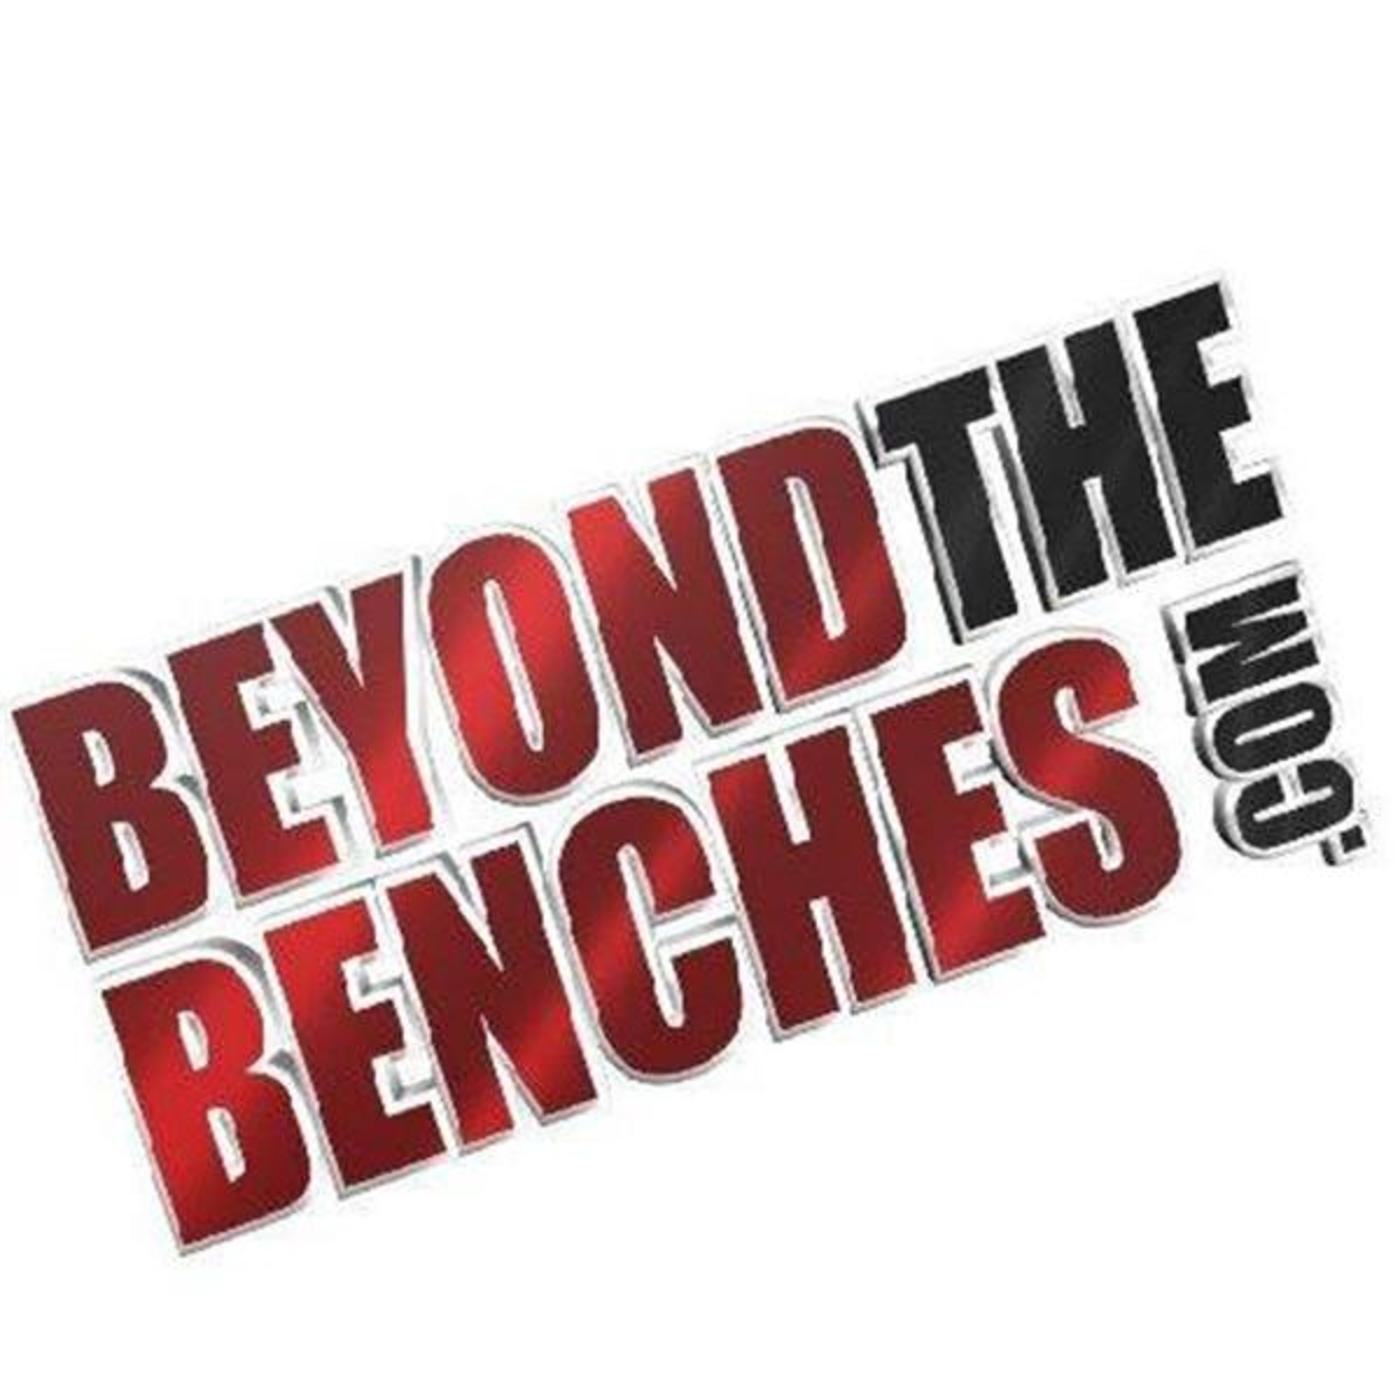 Beyond The Benches